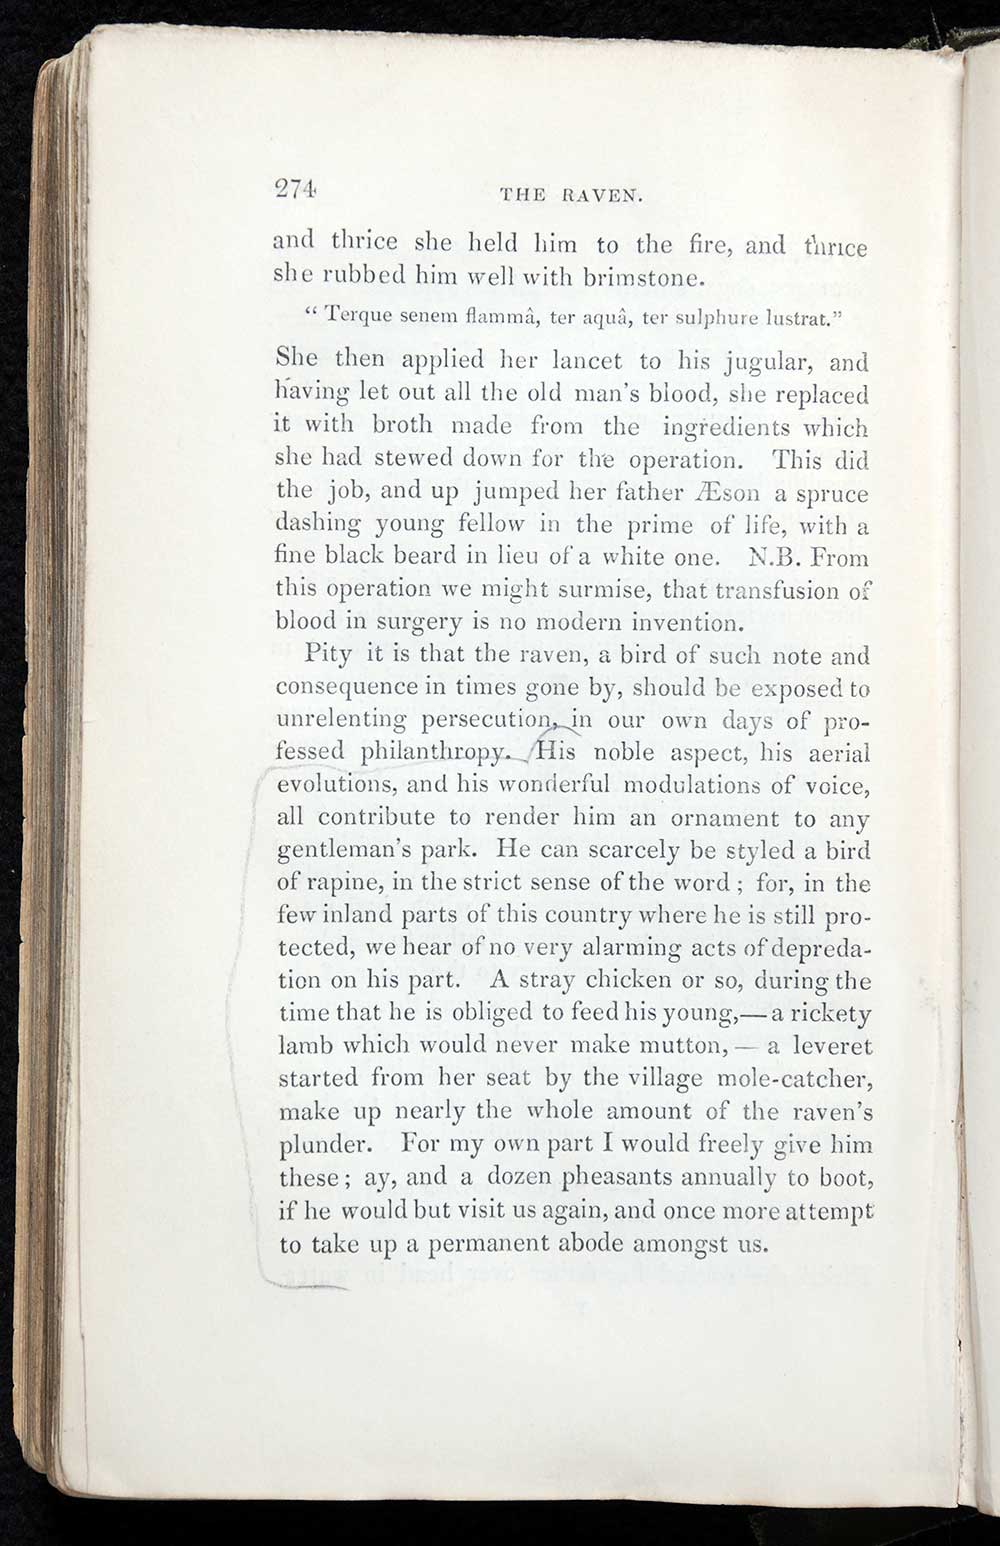 Charles Waterton. <em>Essays on natural history, chiefly ornithology</em>. London: Longman, Orme, Brown, Green & Longmans, 1838.